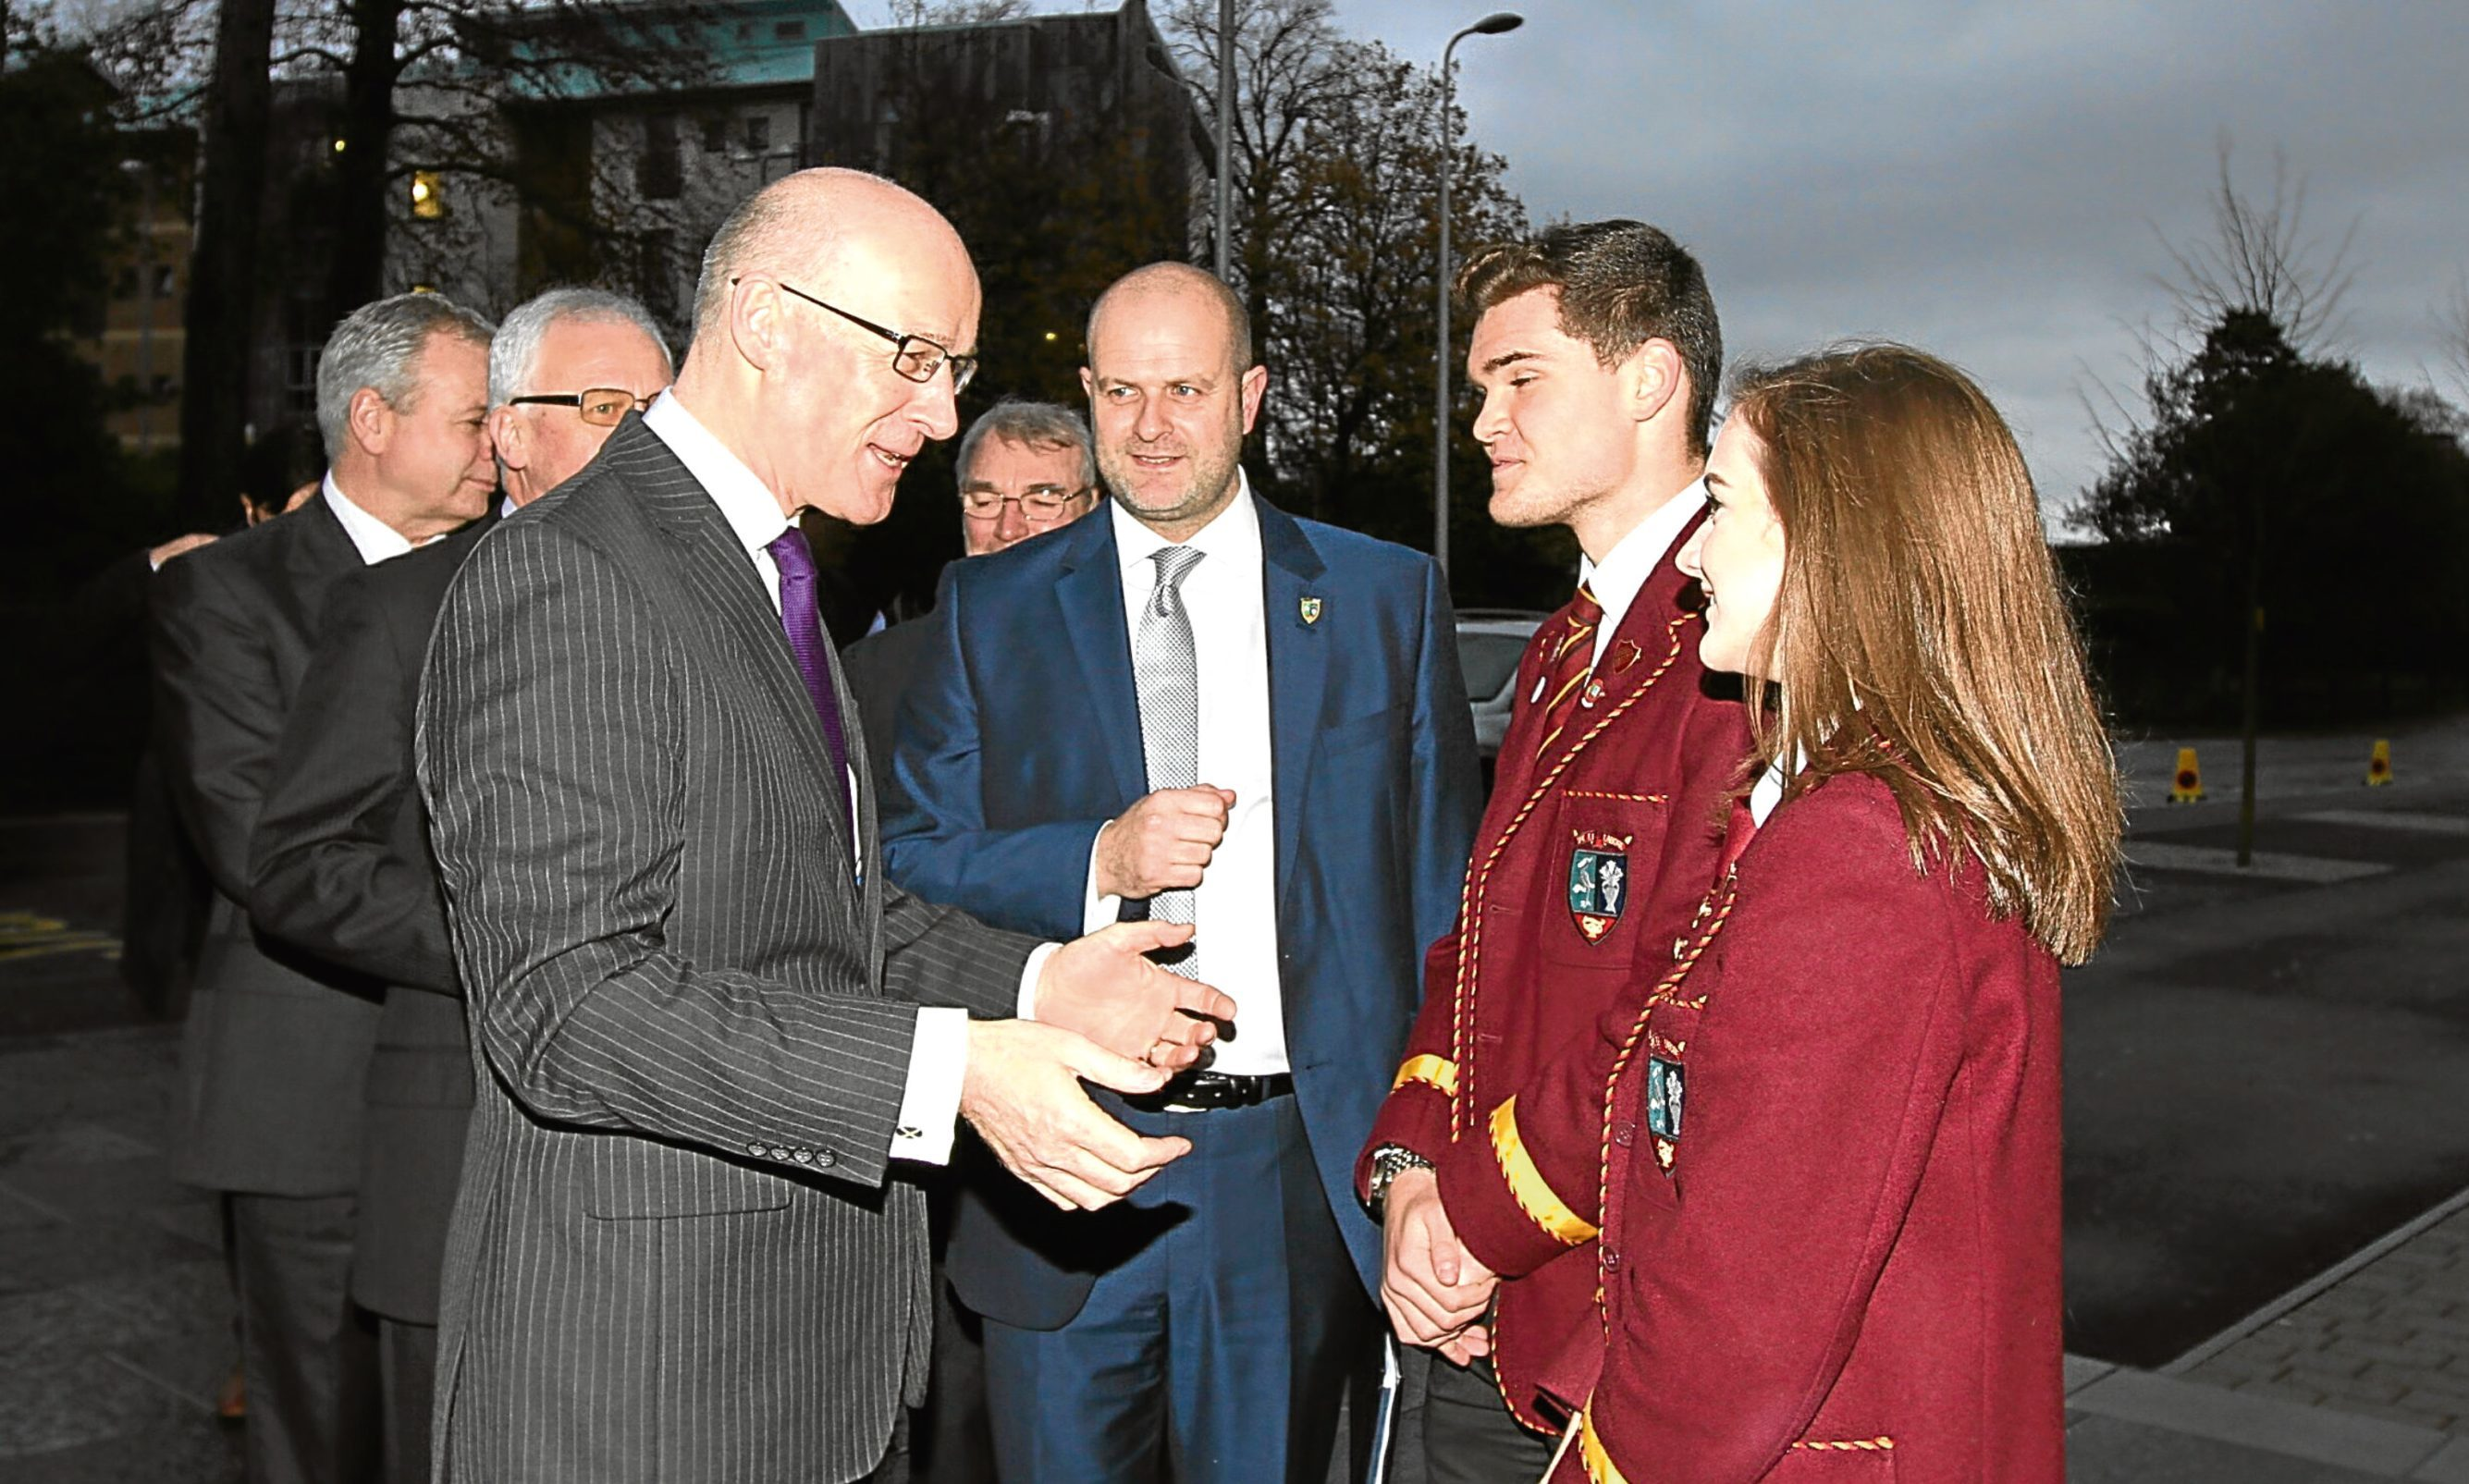 John Swinney chats with headteacher Barry Millar, headgirl Kirsten Ferrier and headboy Sam Pirrie.